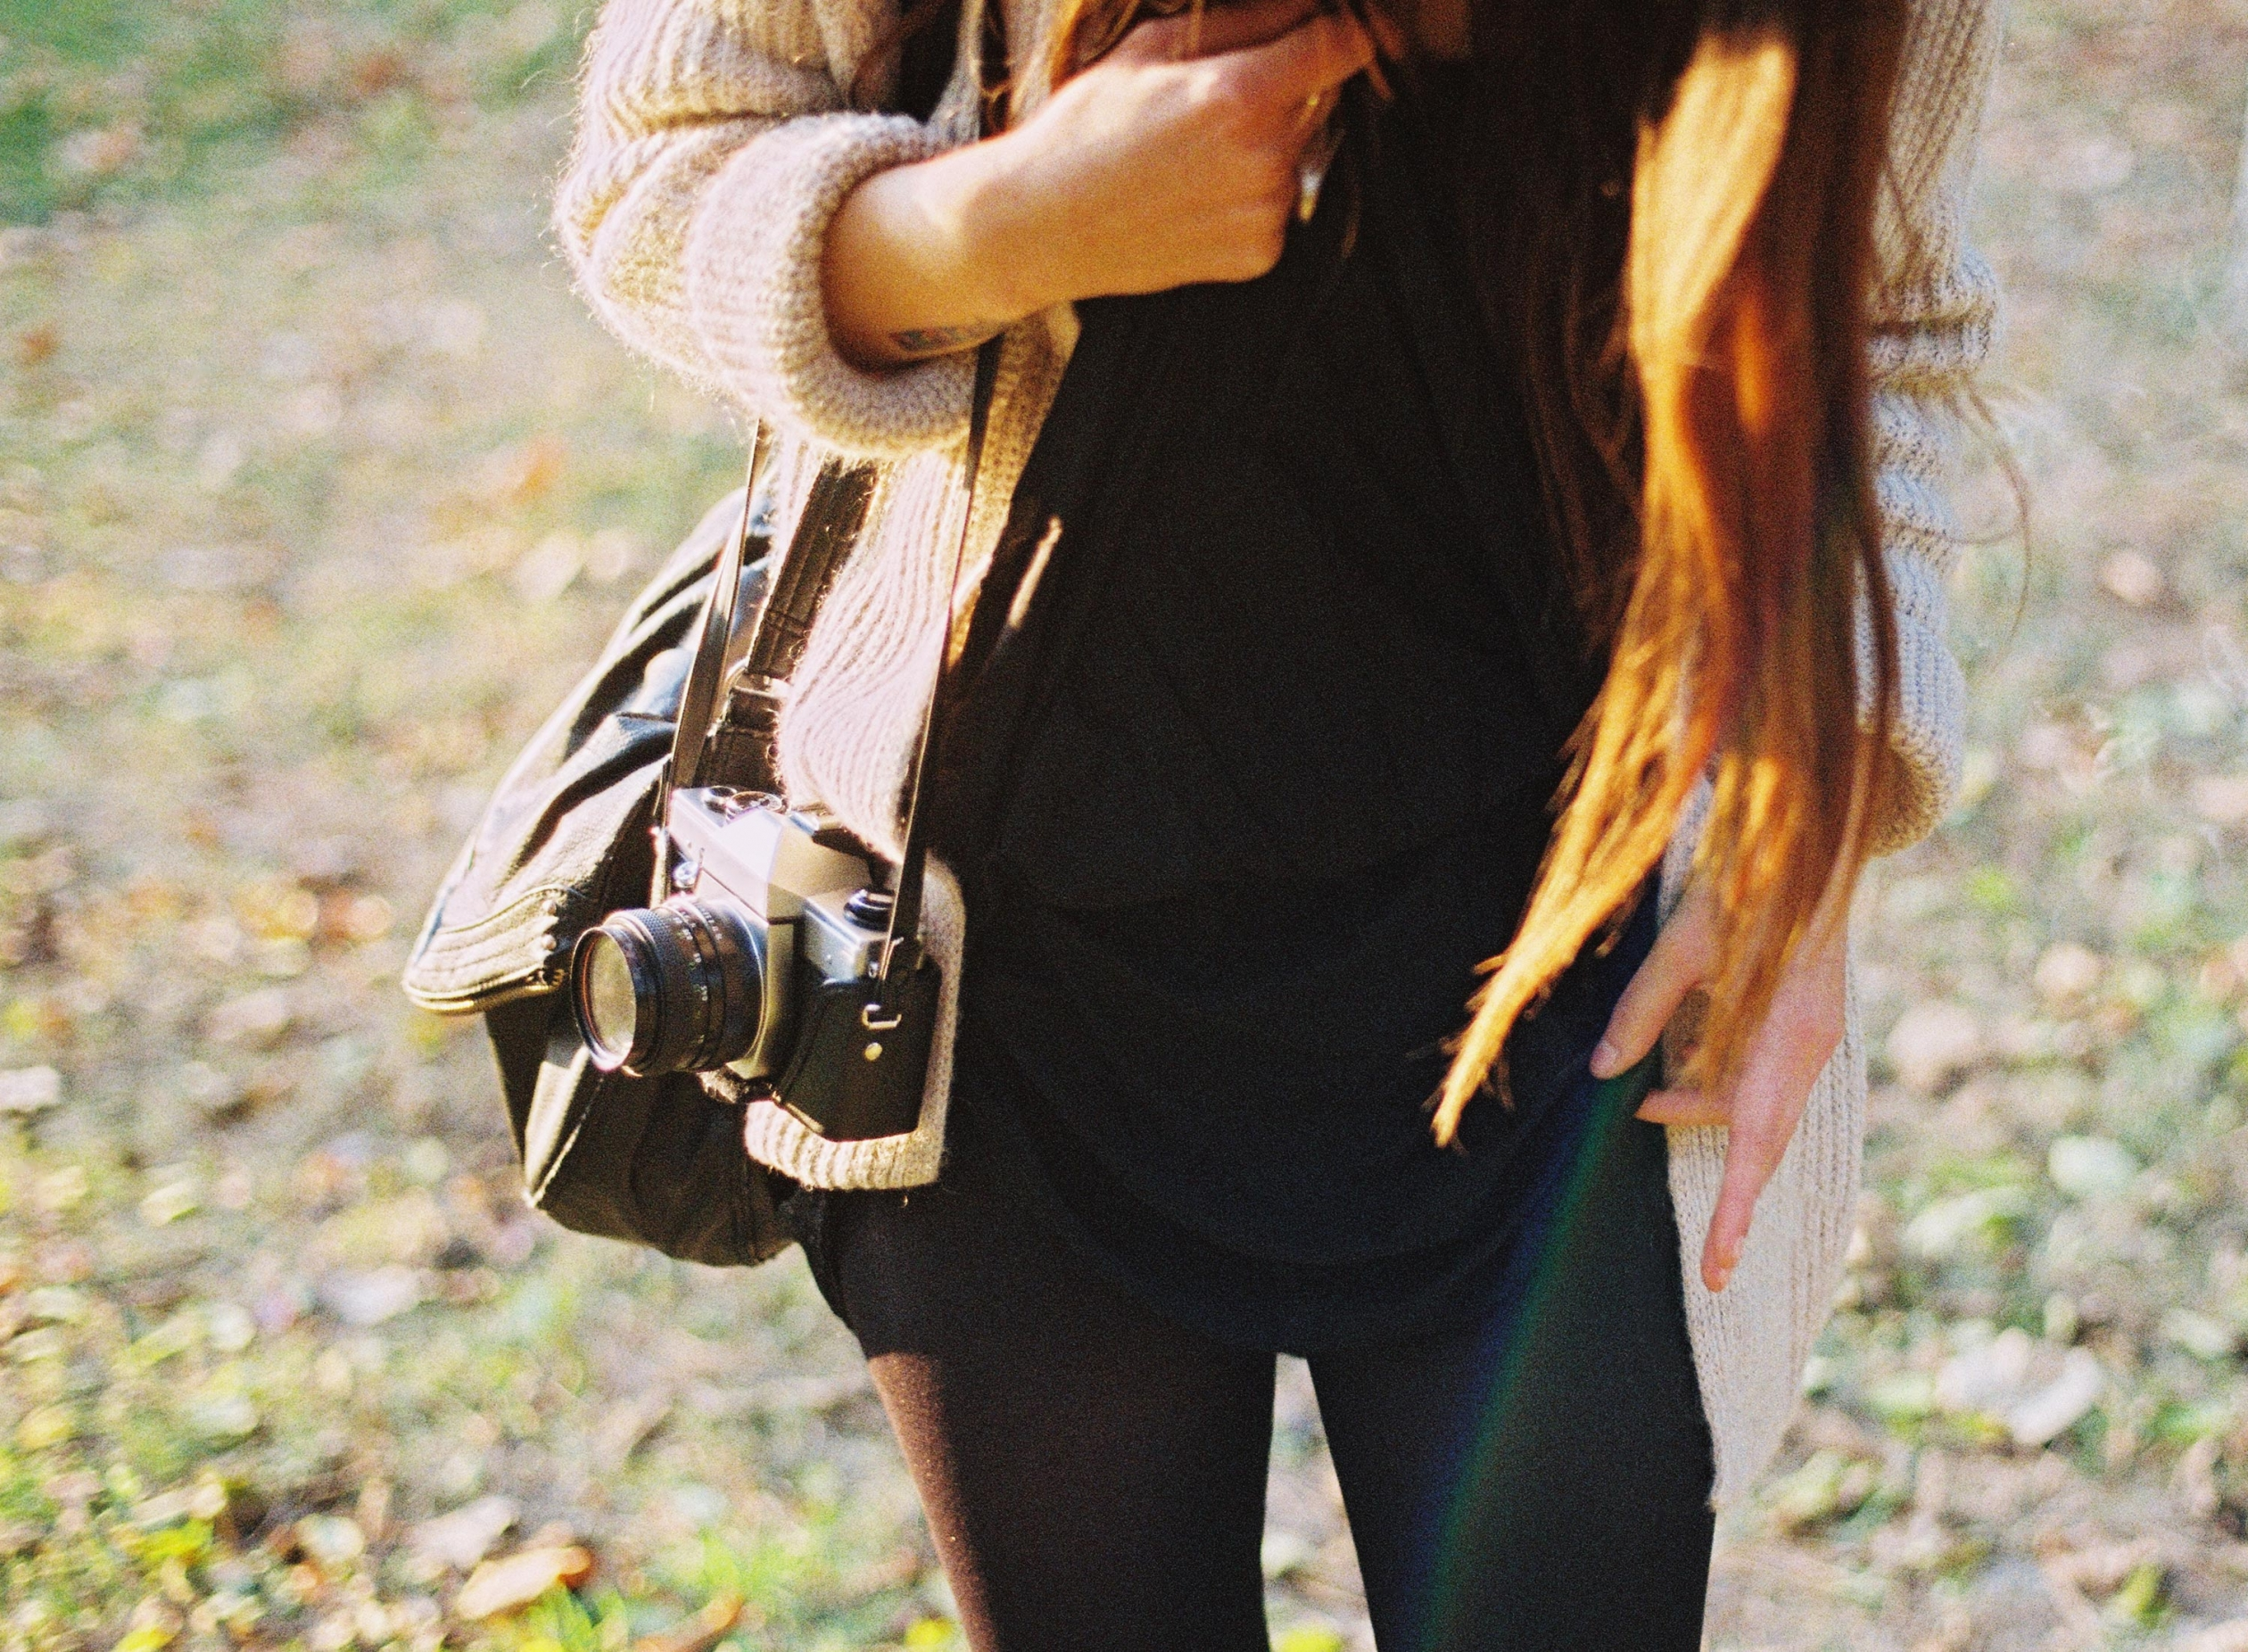 Woman holding a camera walking in a field